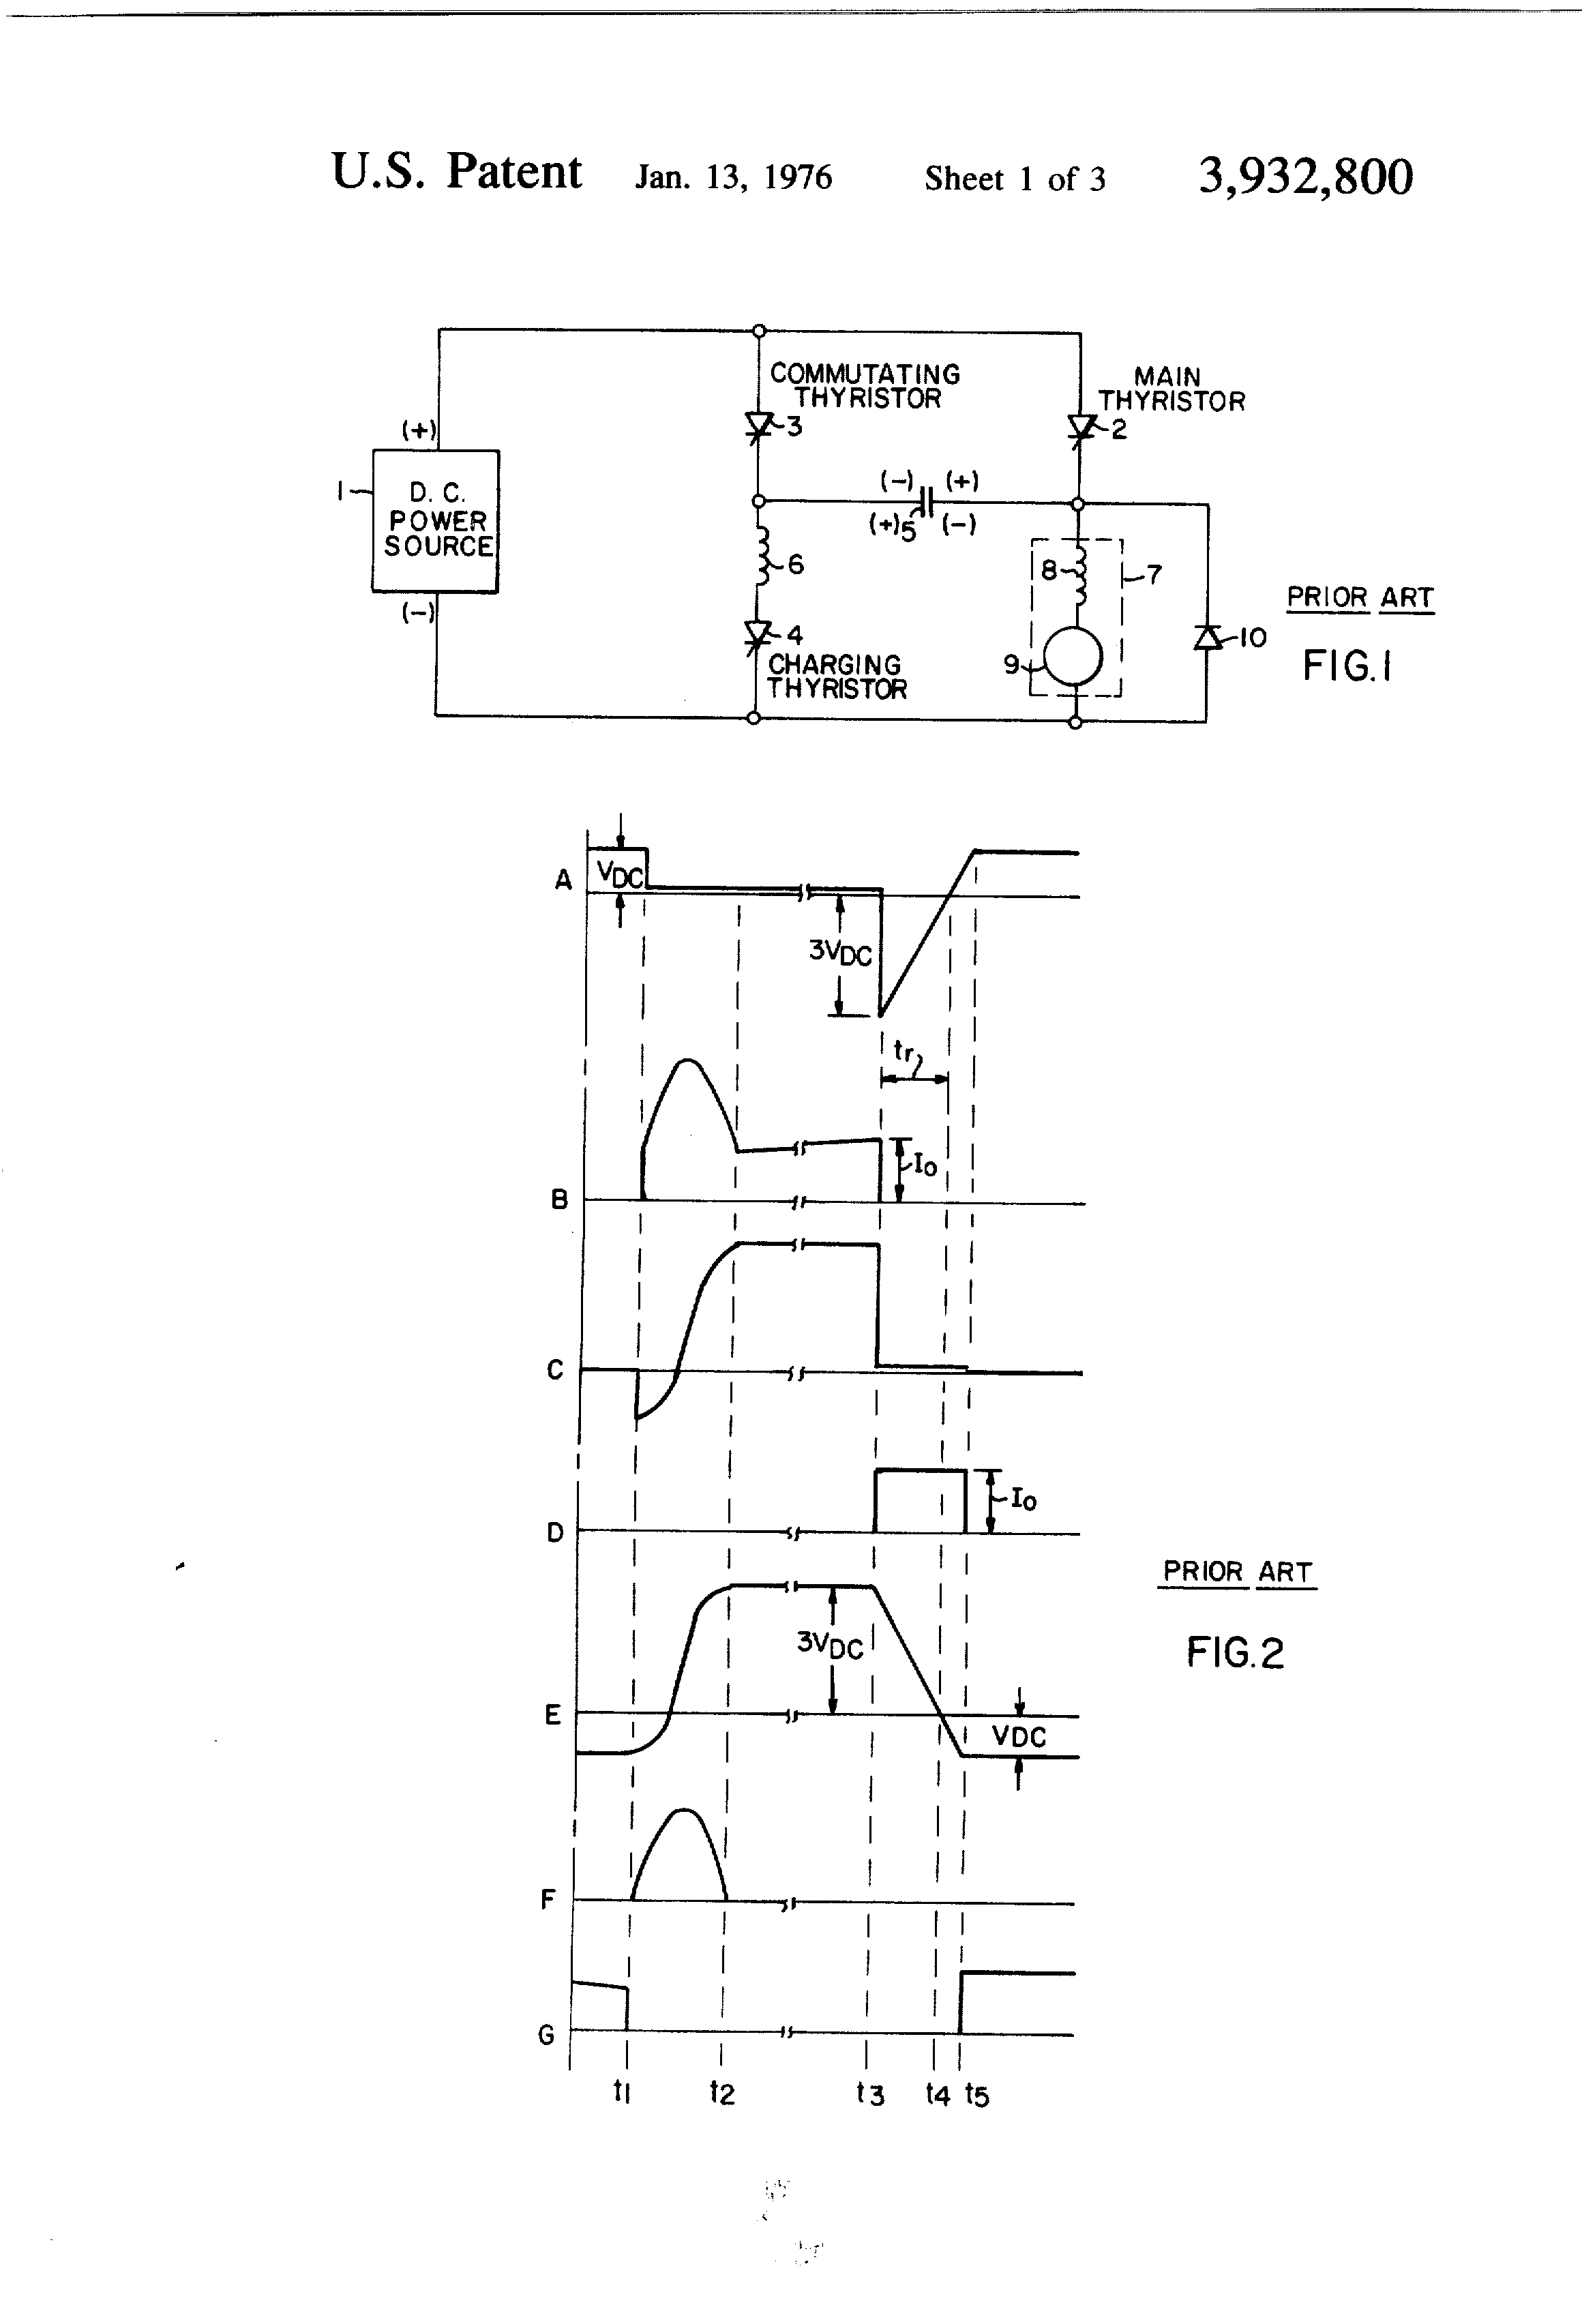 direct current diagram. patent drawing direct current diagram